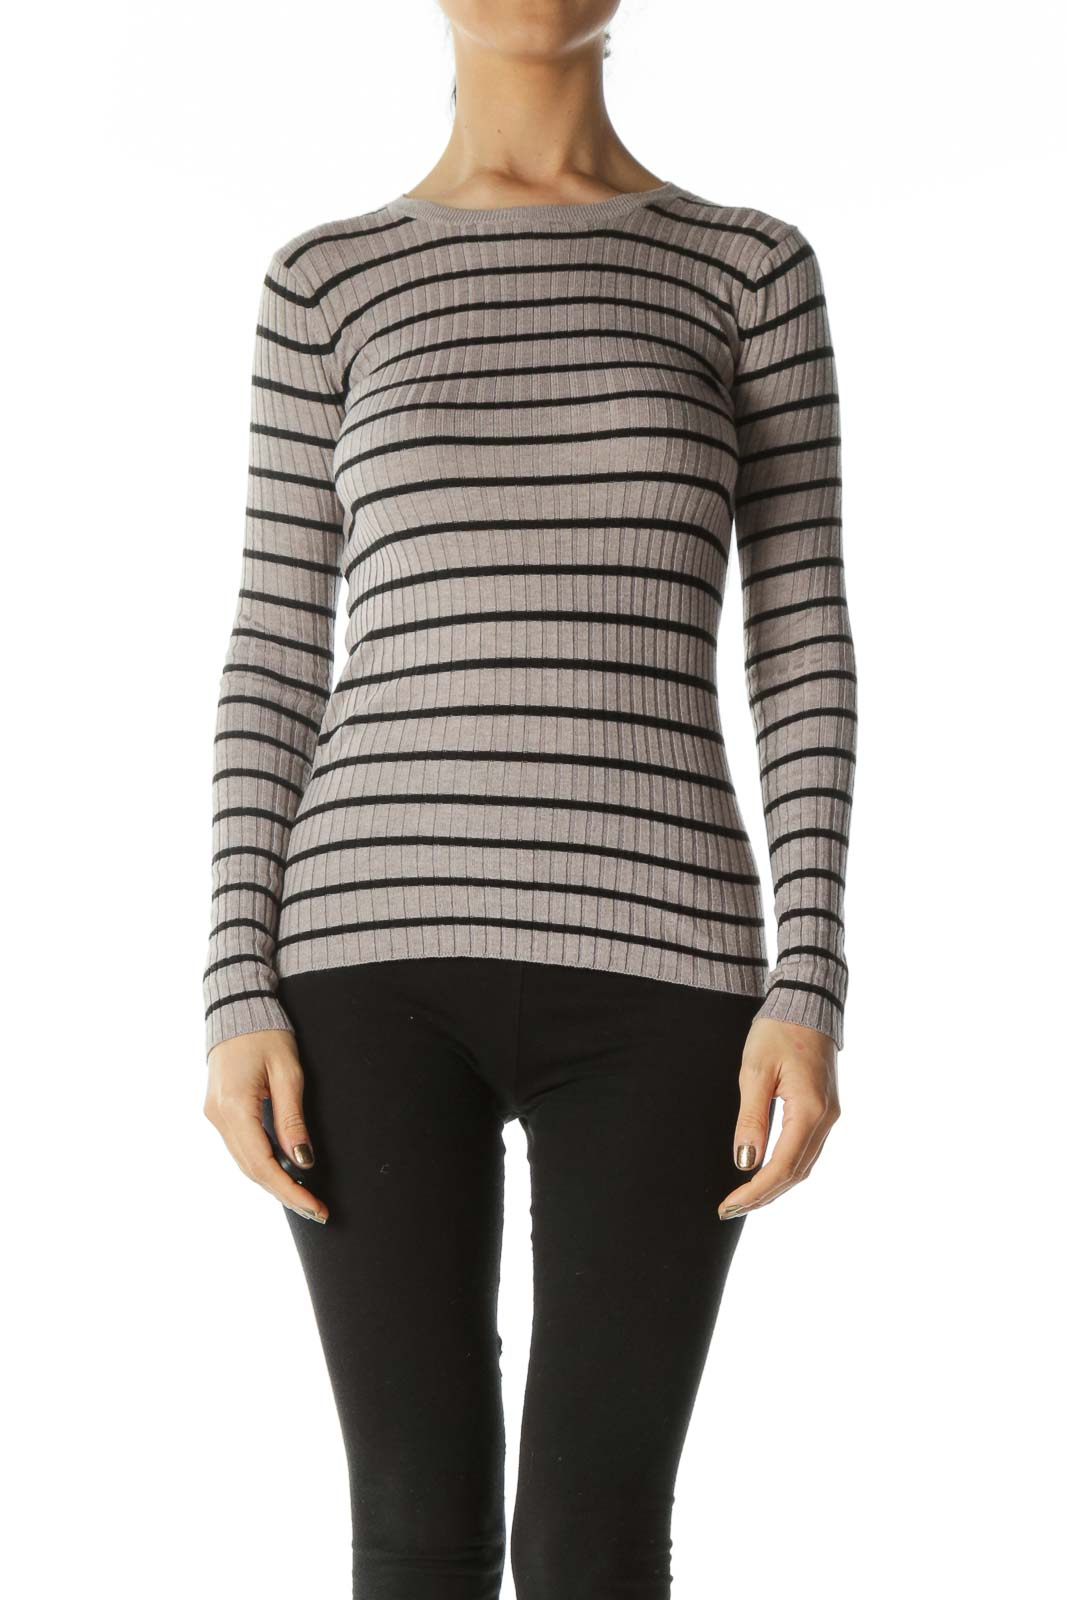 Grey and Black Striped Ribbed Long Sleeve Top